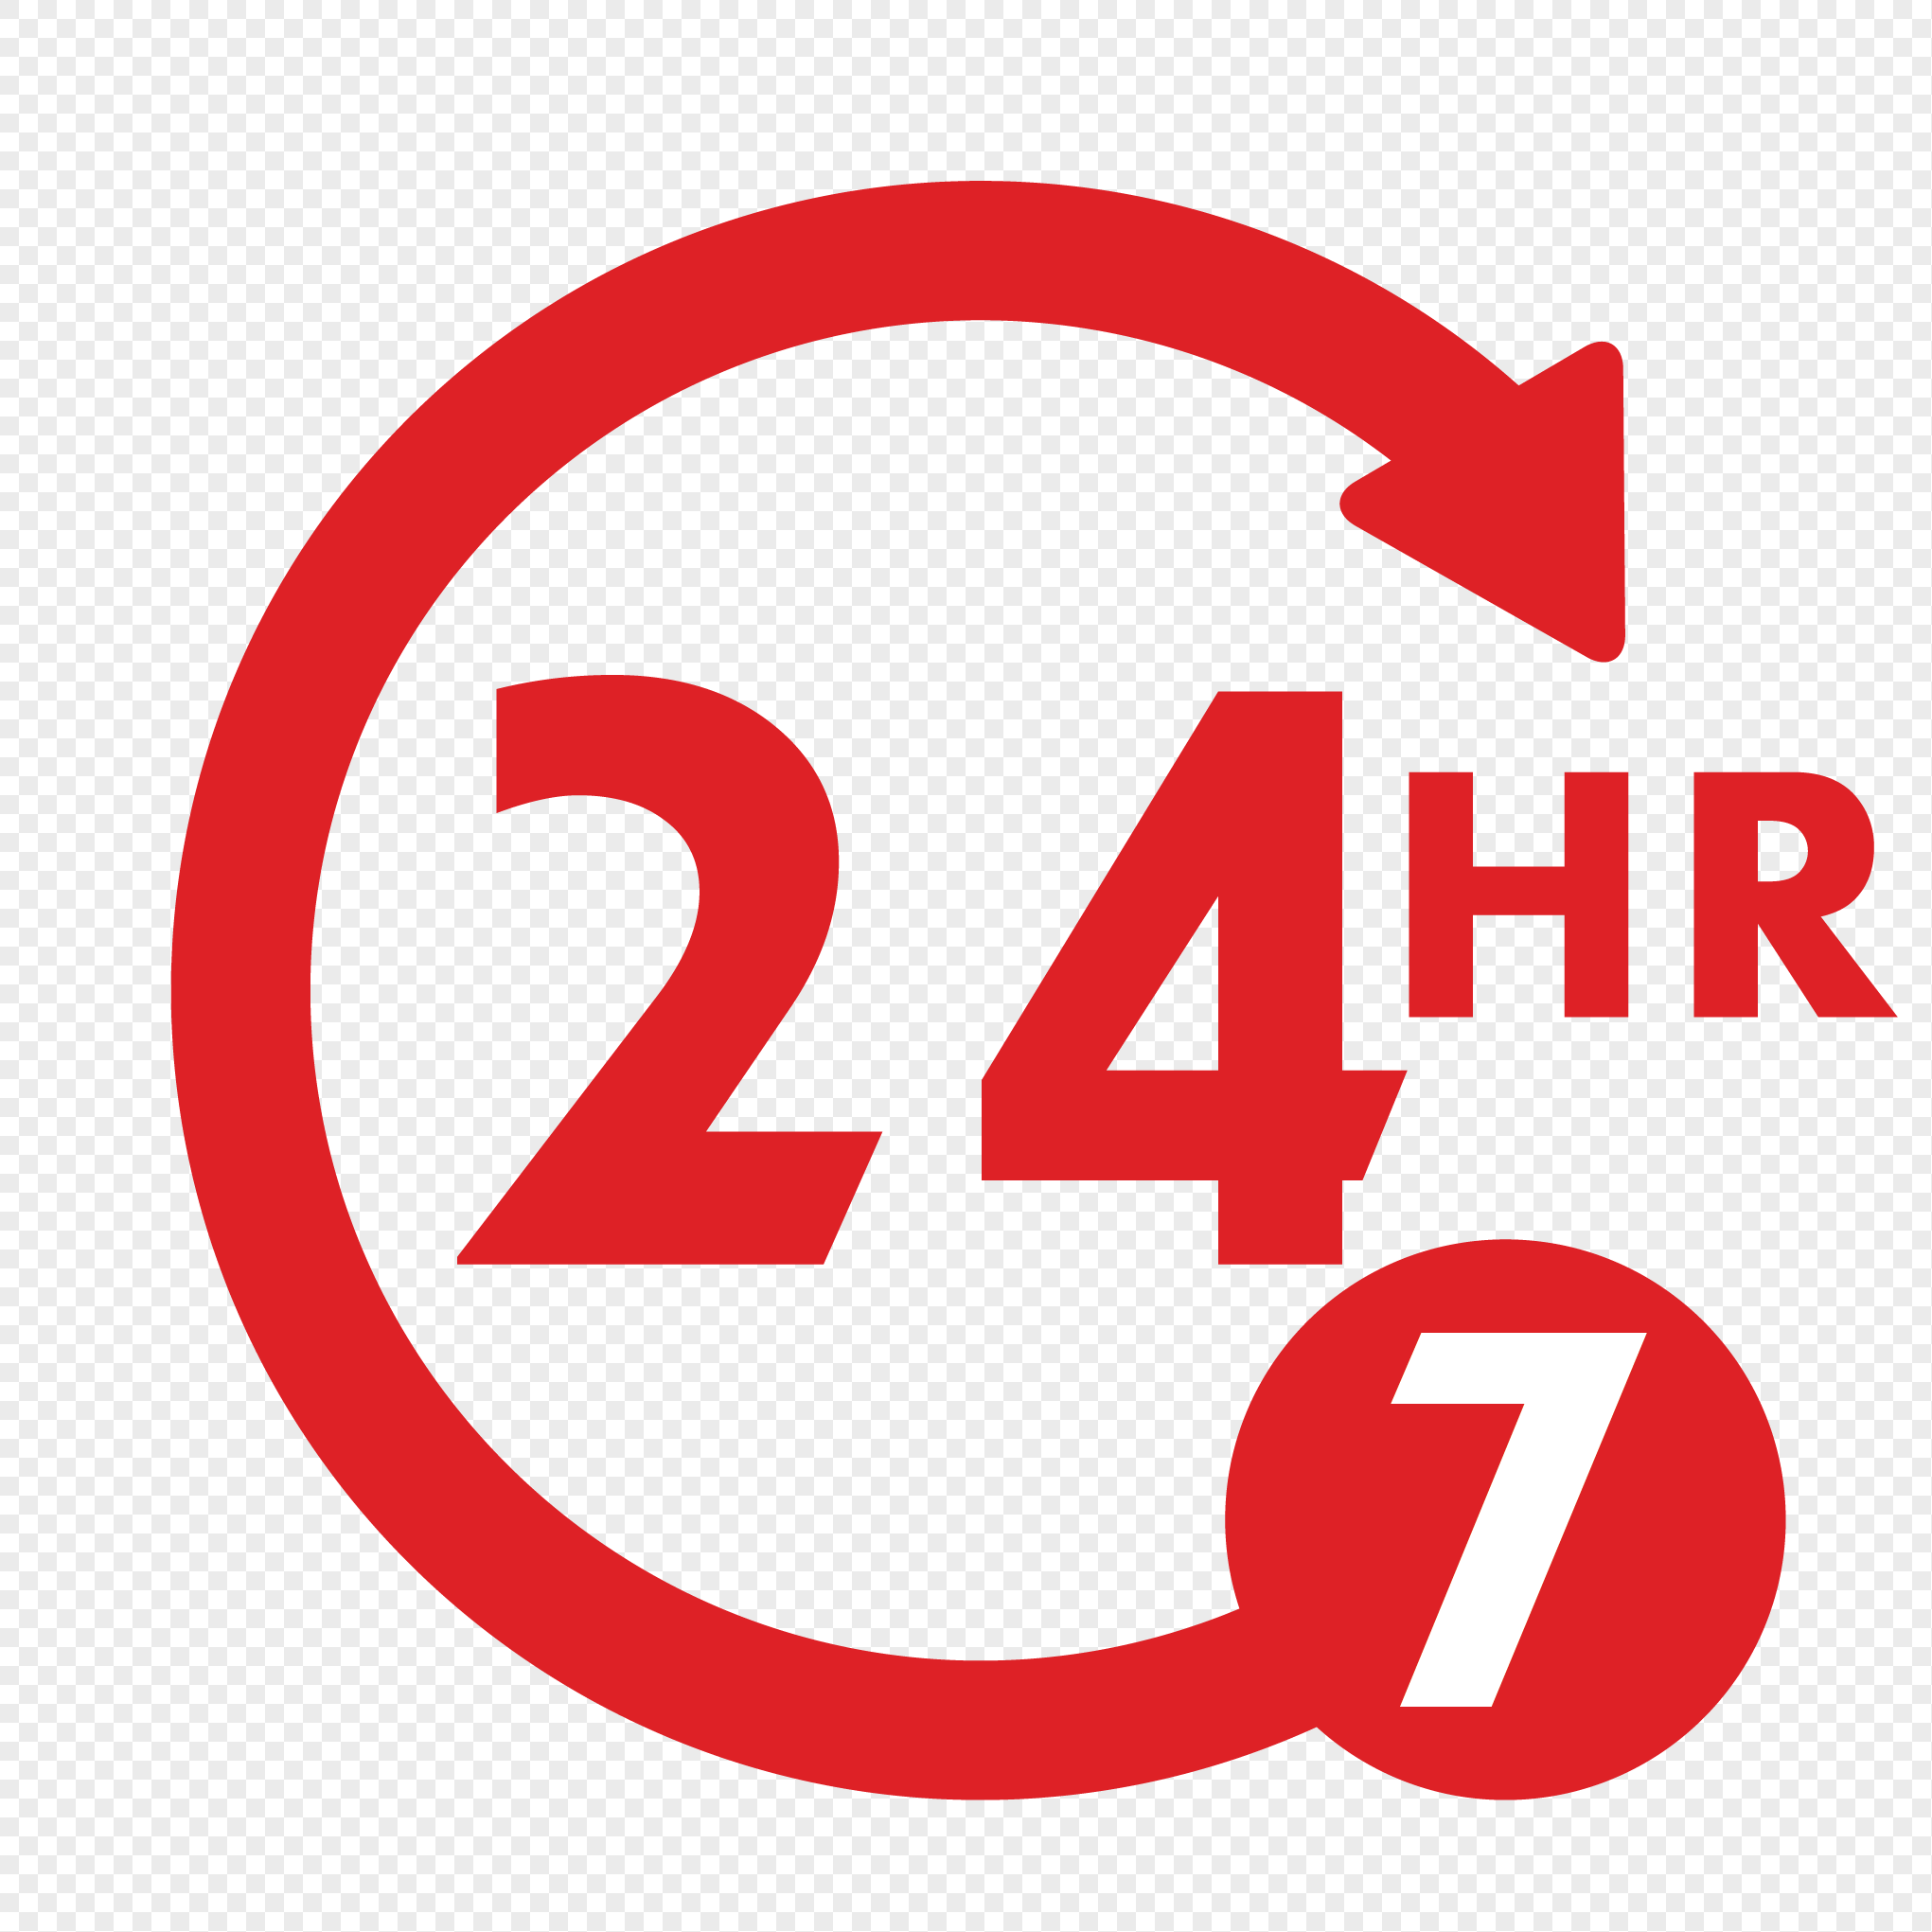 24h business art word design icon material png image picture free